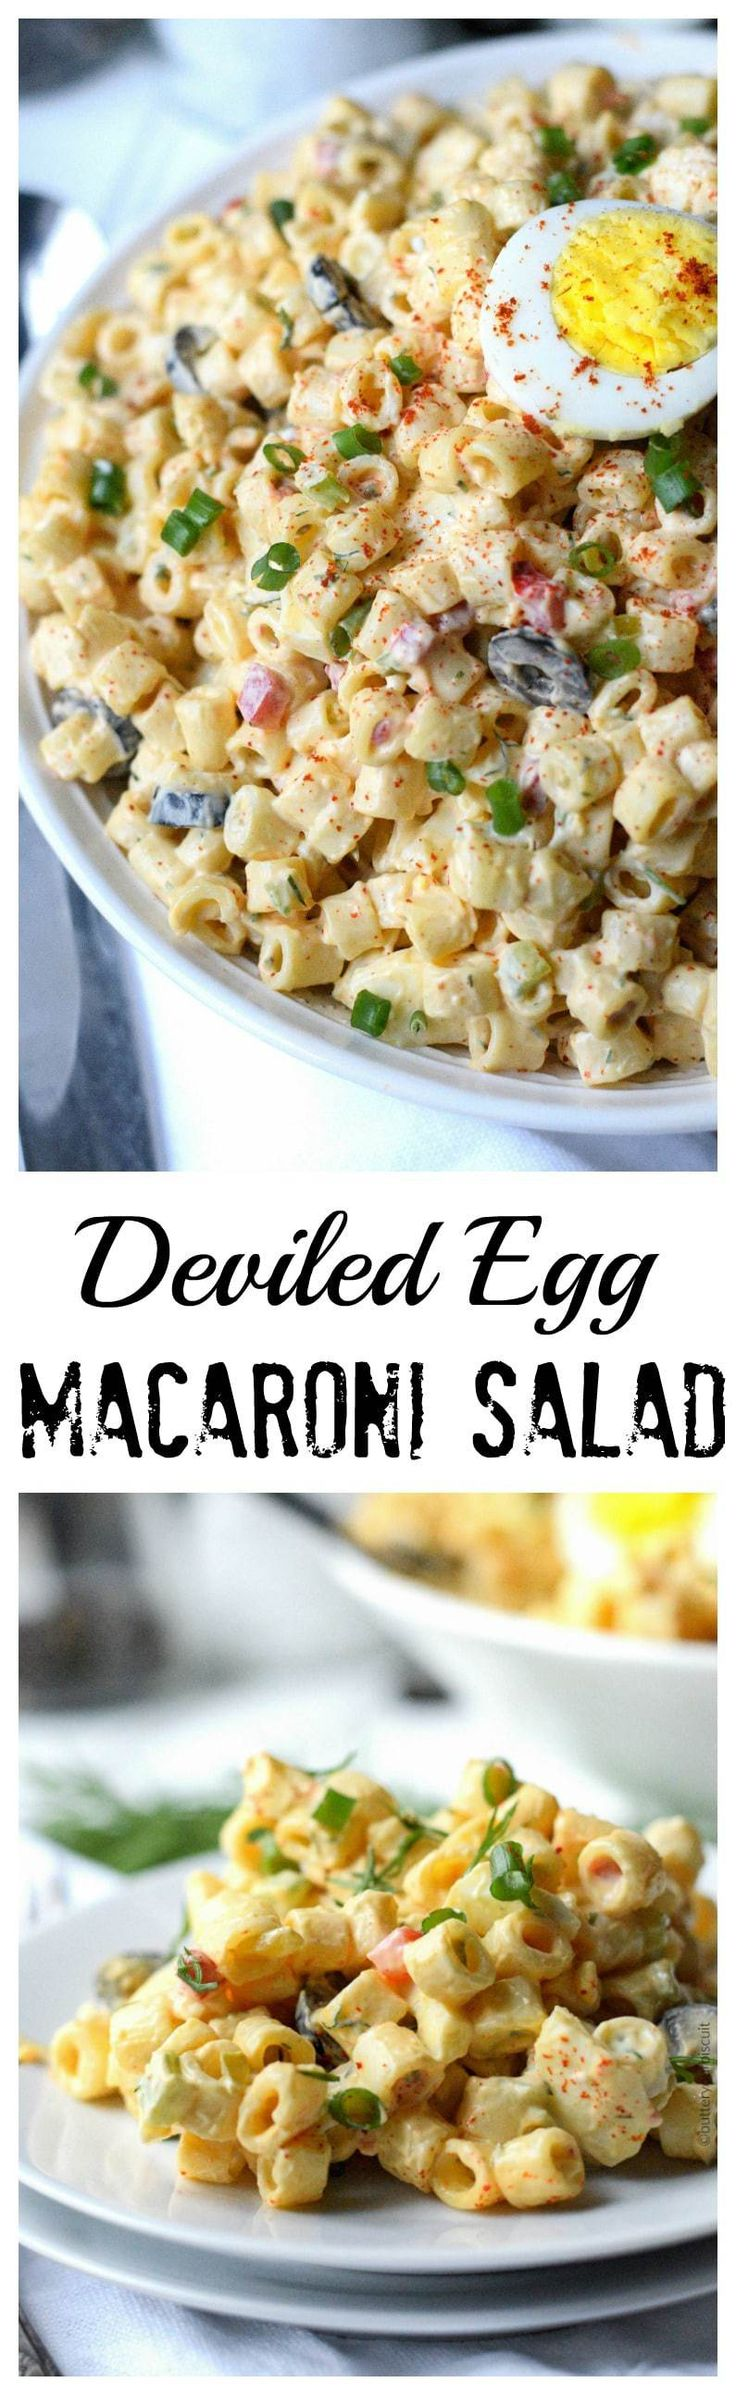 This deviled egg macaroni salad is packed with eggs and creamy noodles. A super easy classic macaroni salad.